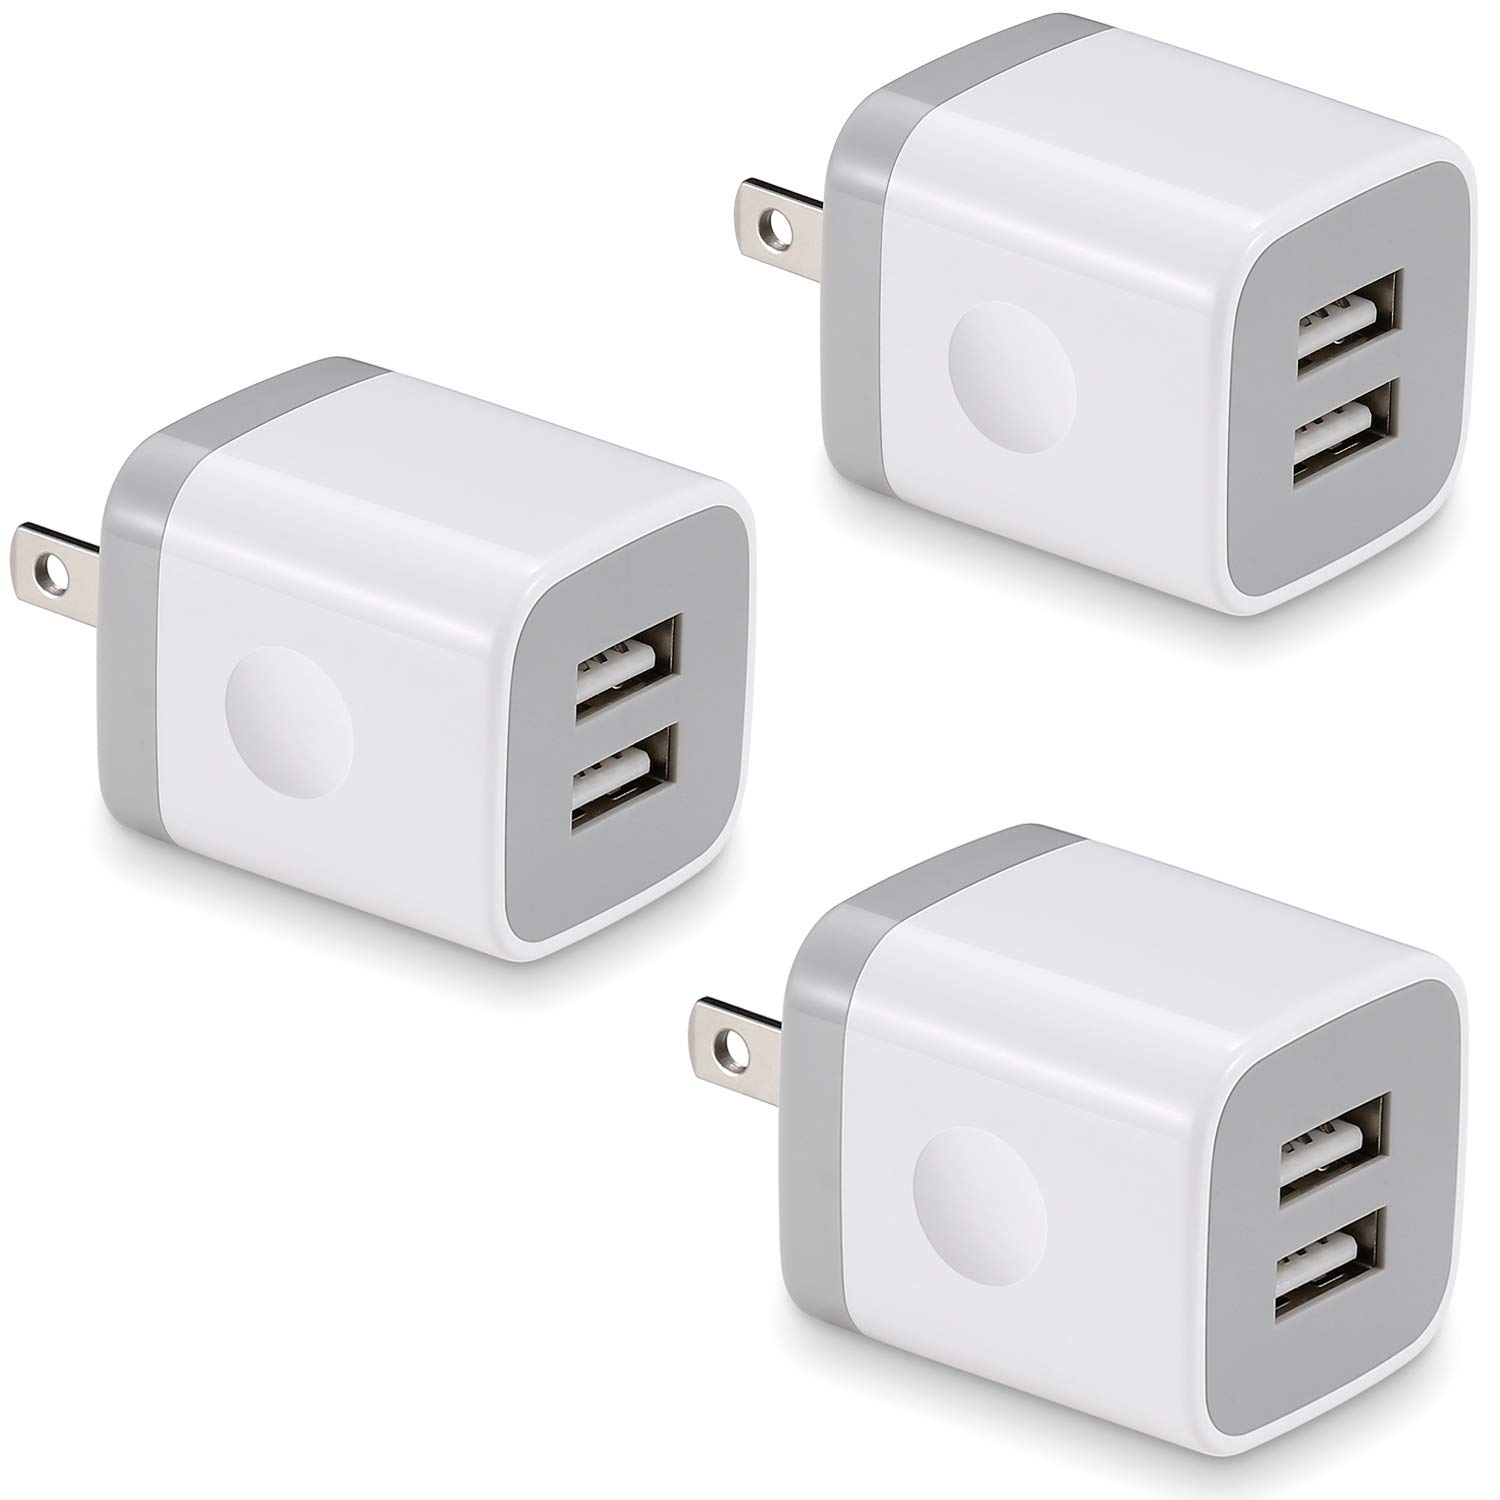 USB Wall Charger, BEST4ONE 3-Pack 2.1A/5V Dual Port USB Plug Power Adapter Charging Block Cube Compatible with Phone X 8/7/6 Plus SE/5S/4S, Samsung, Moto, Kindle, Android Phone -White by BEST4ONE